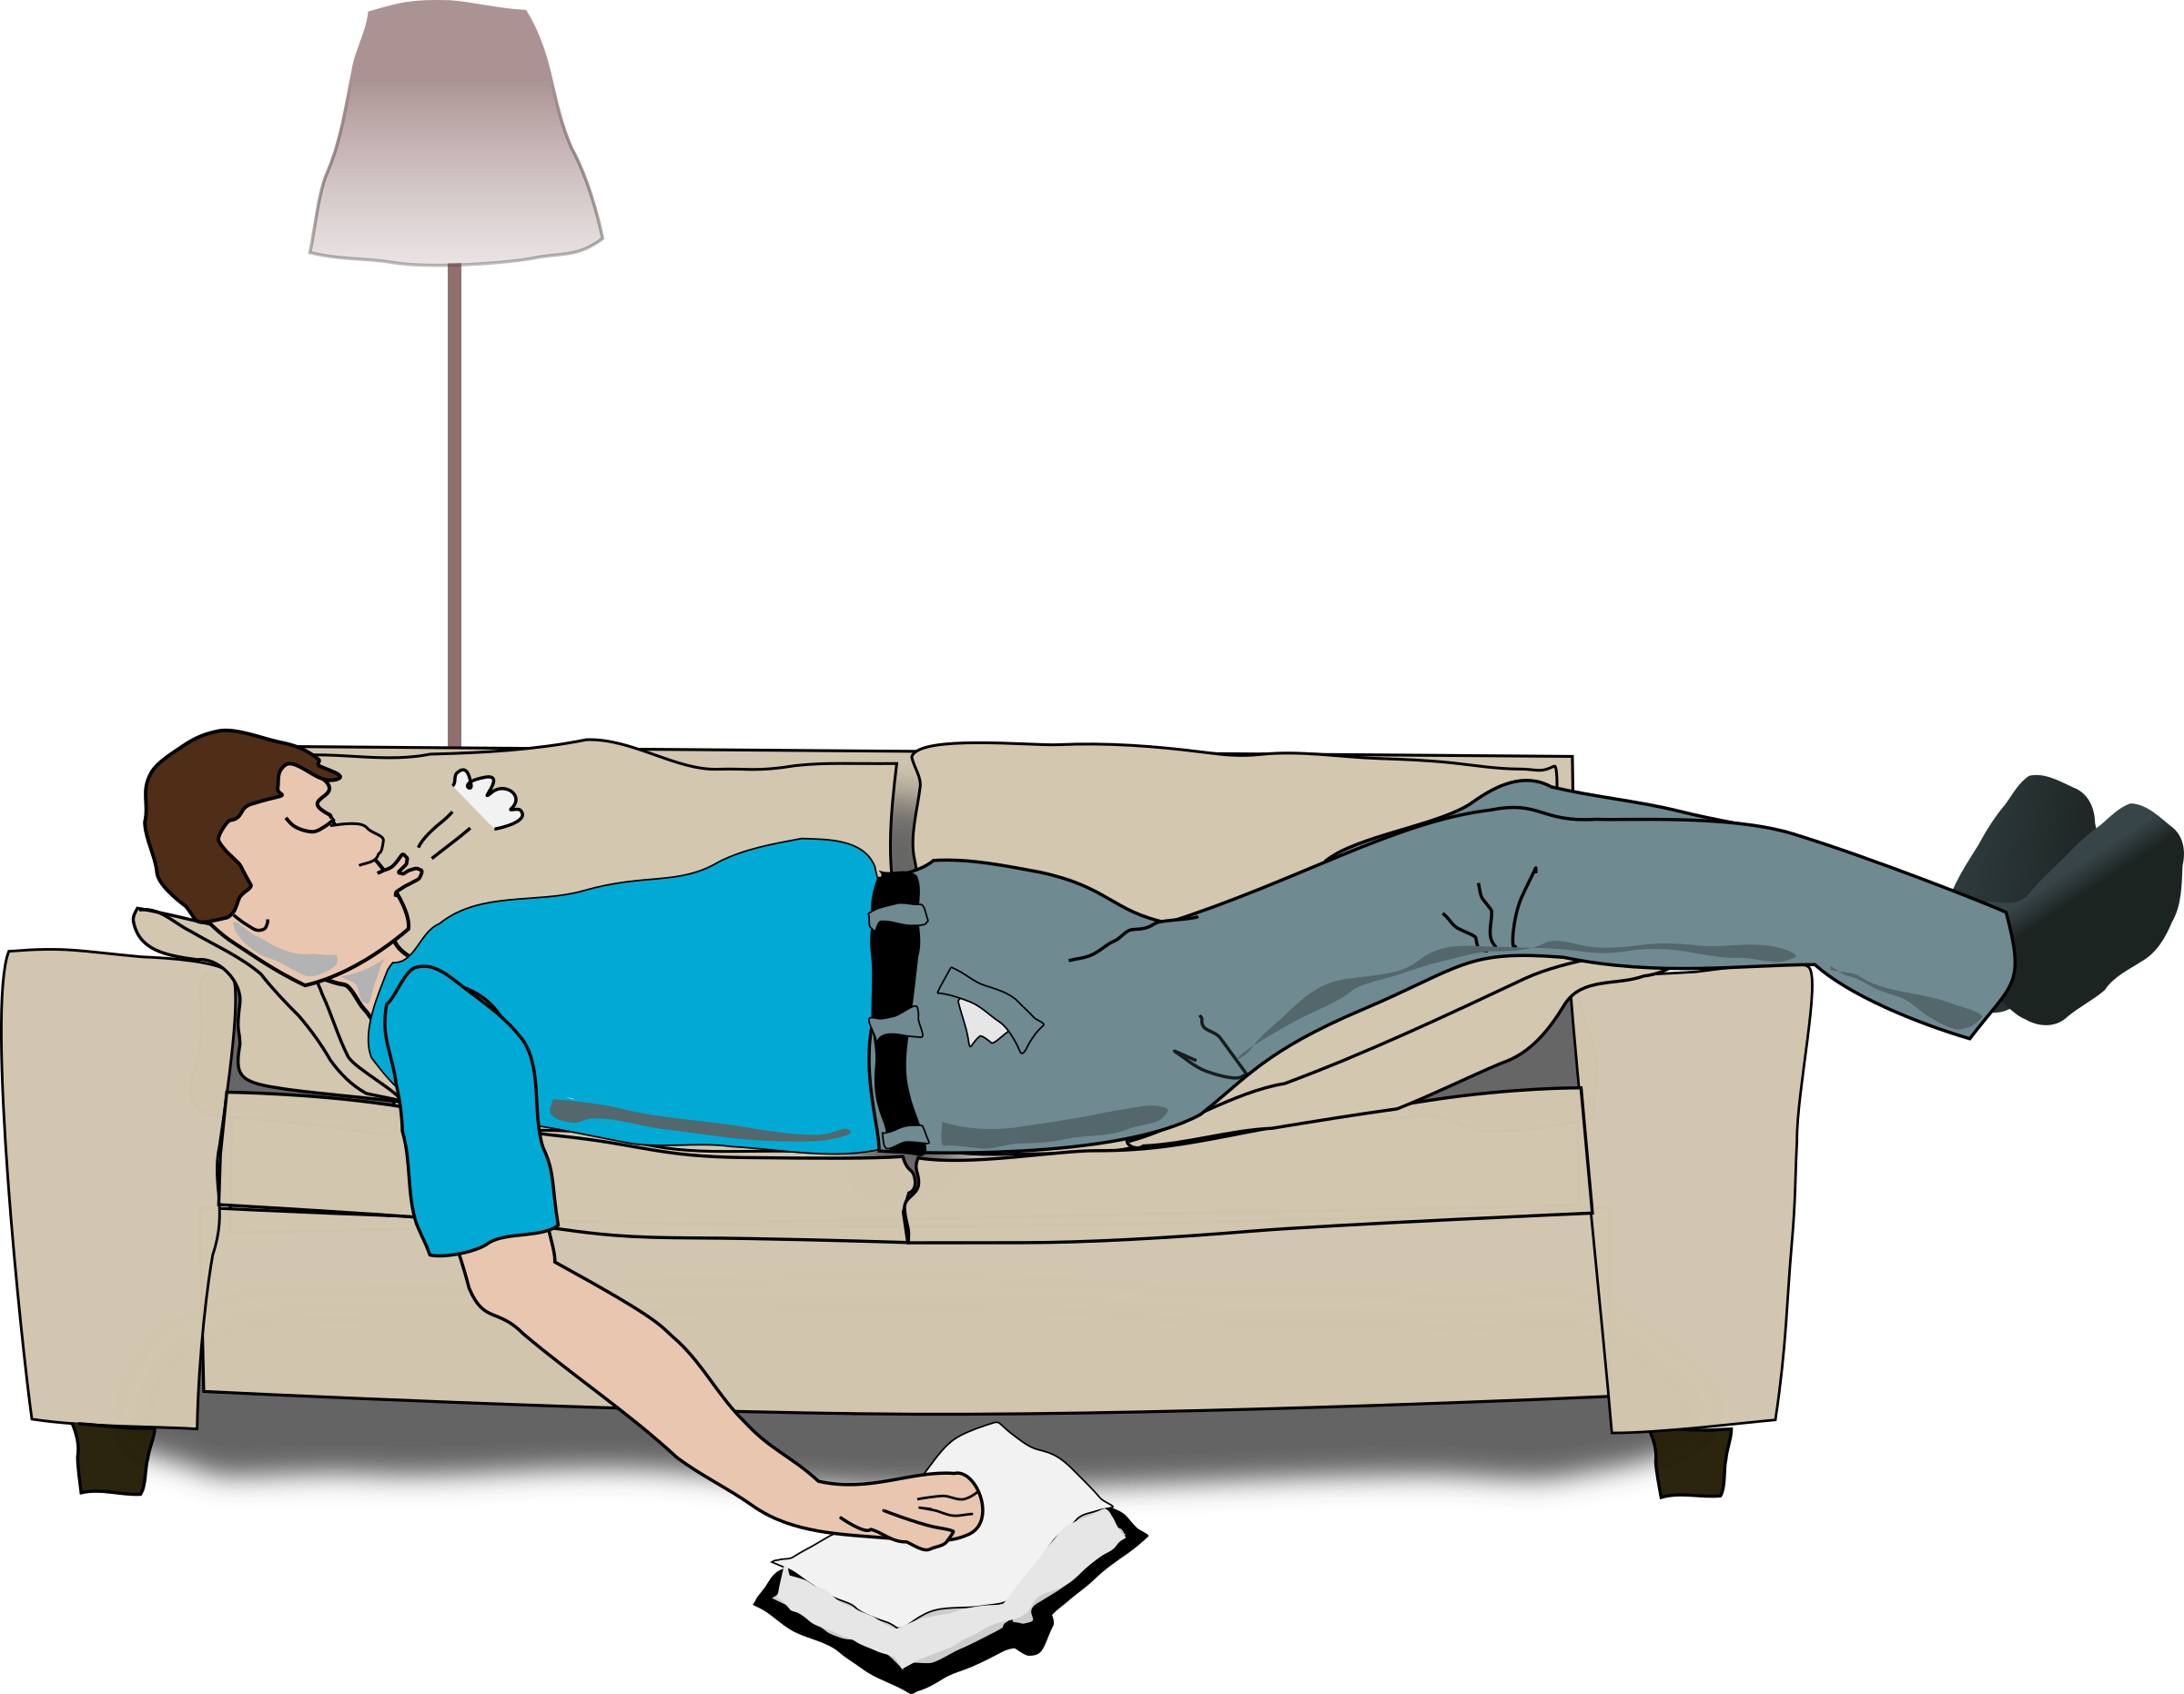 Furniture clipart cartoon. Sleeping big image png